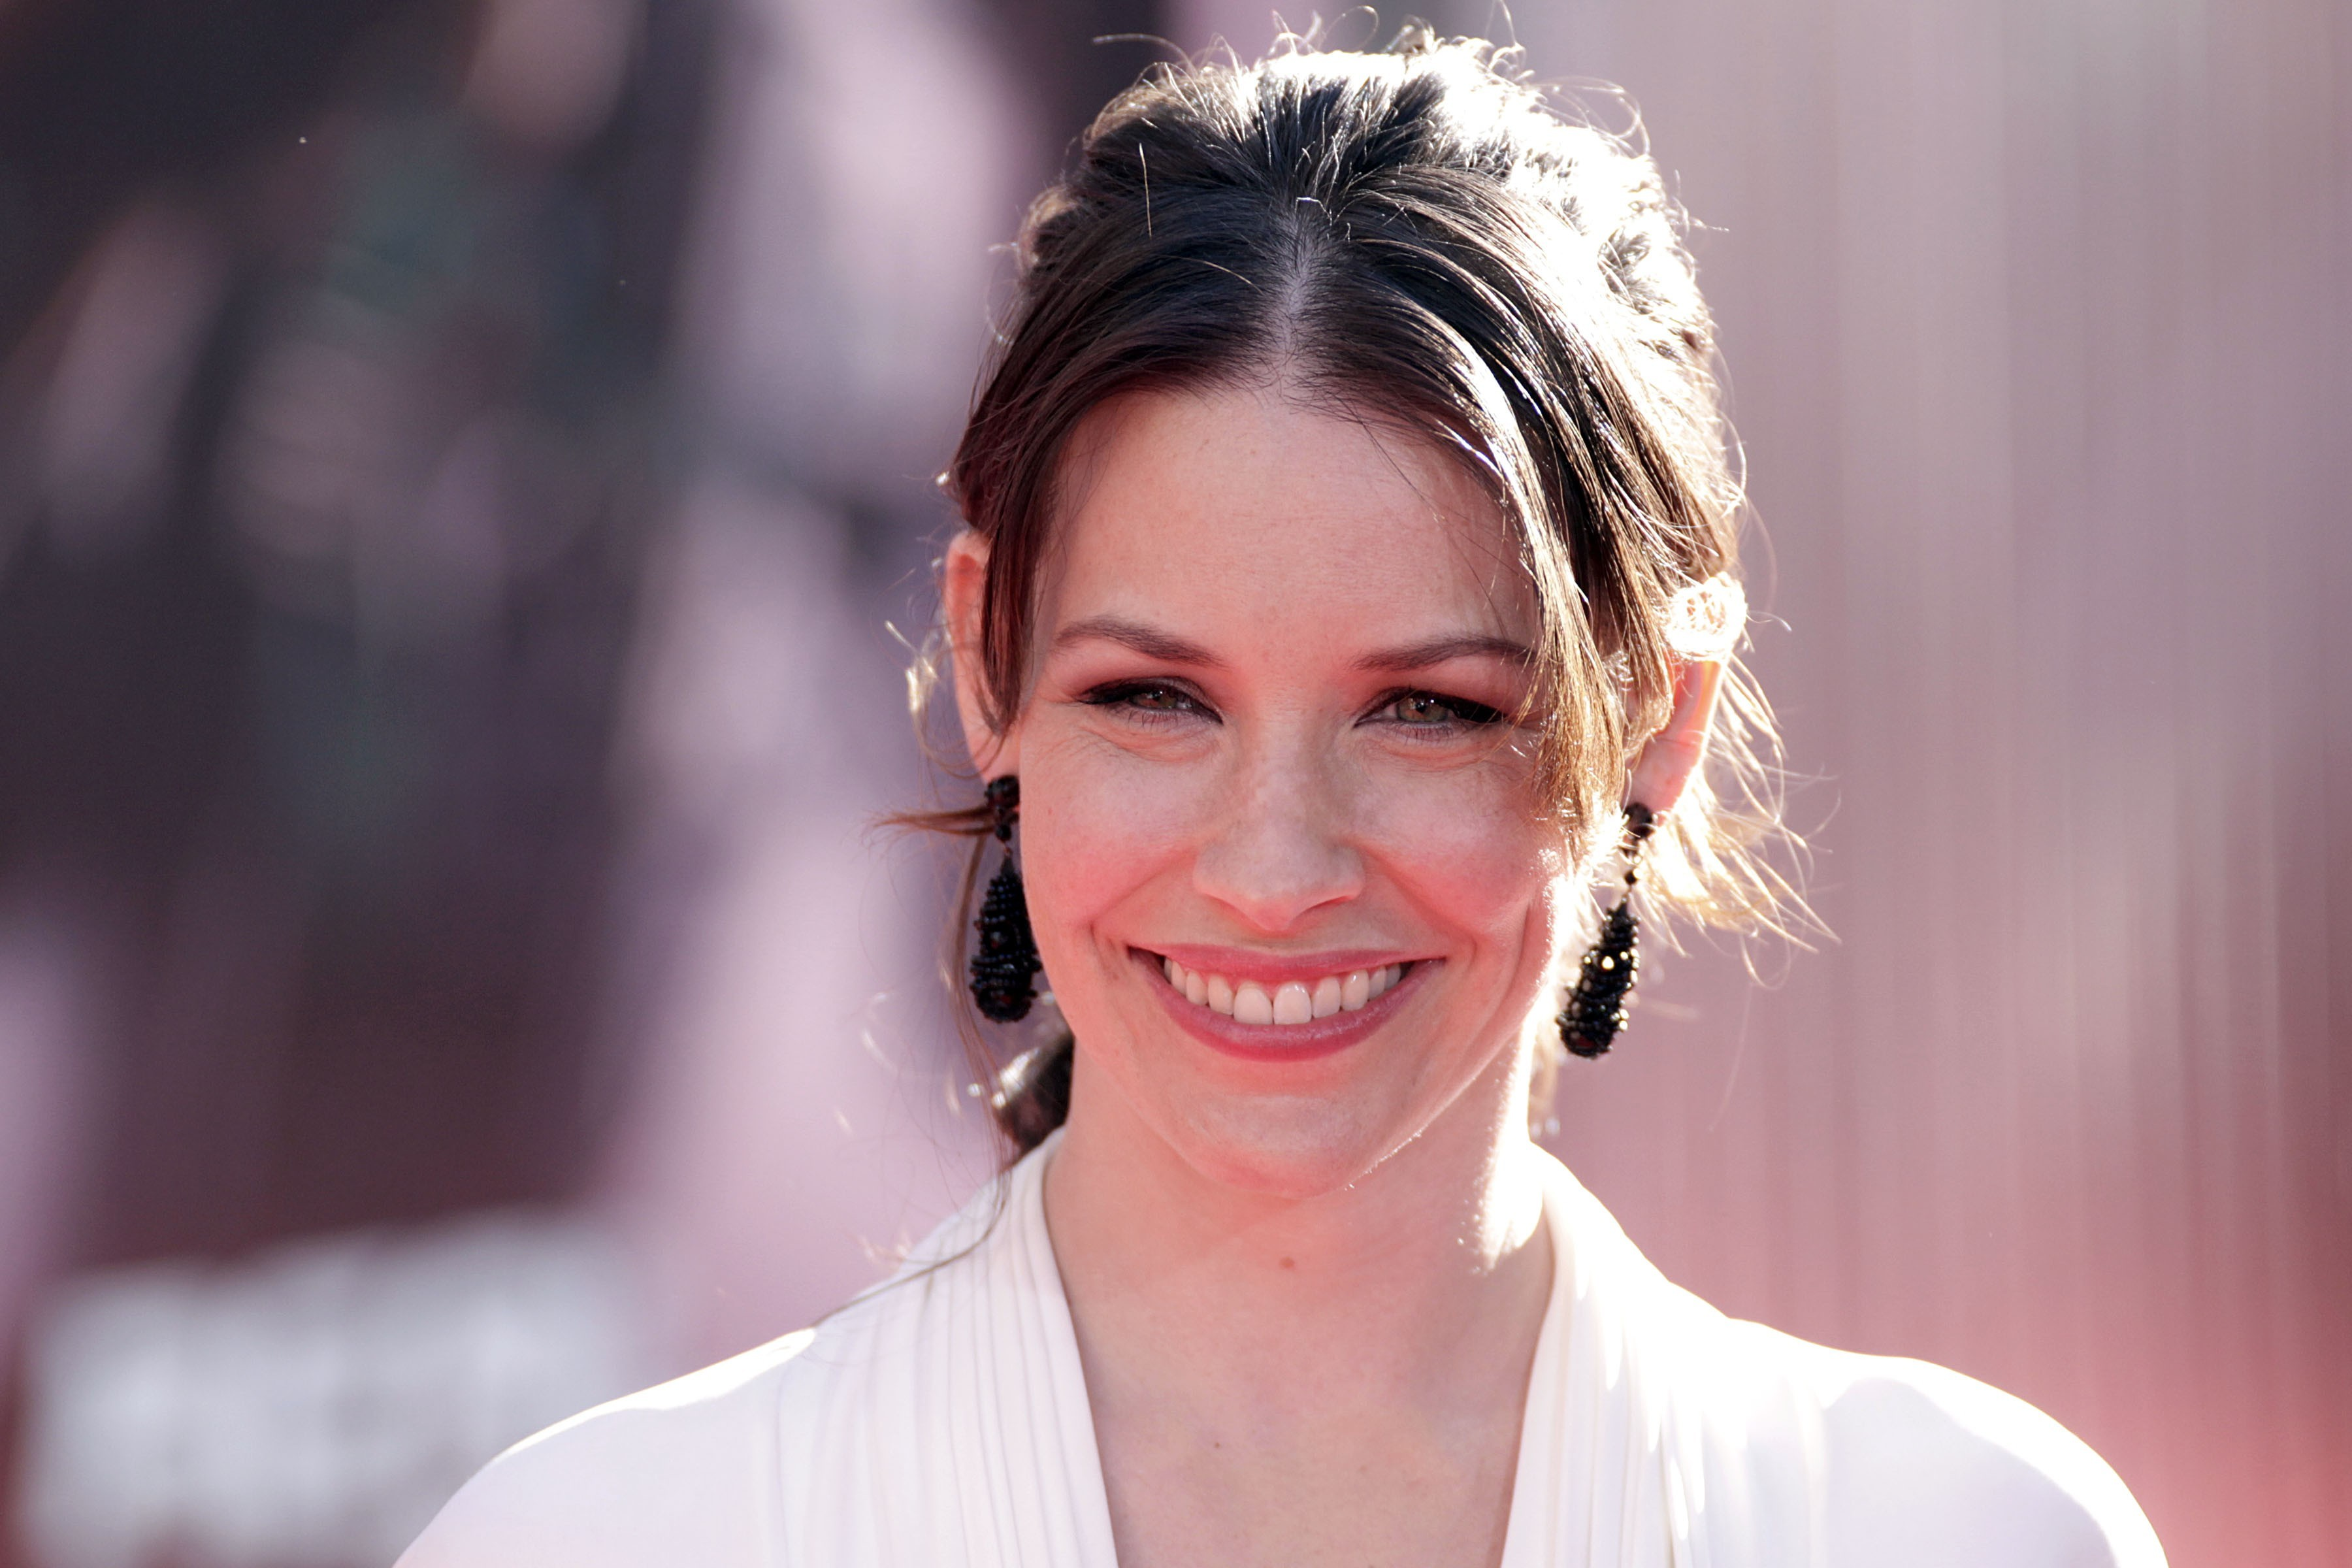 woman evangeline lilly smiling HD Wallpaper